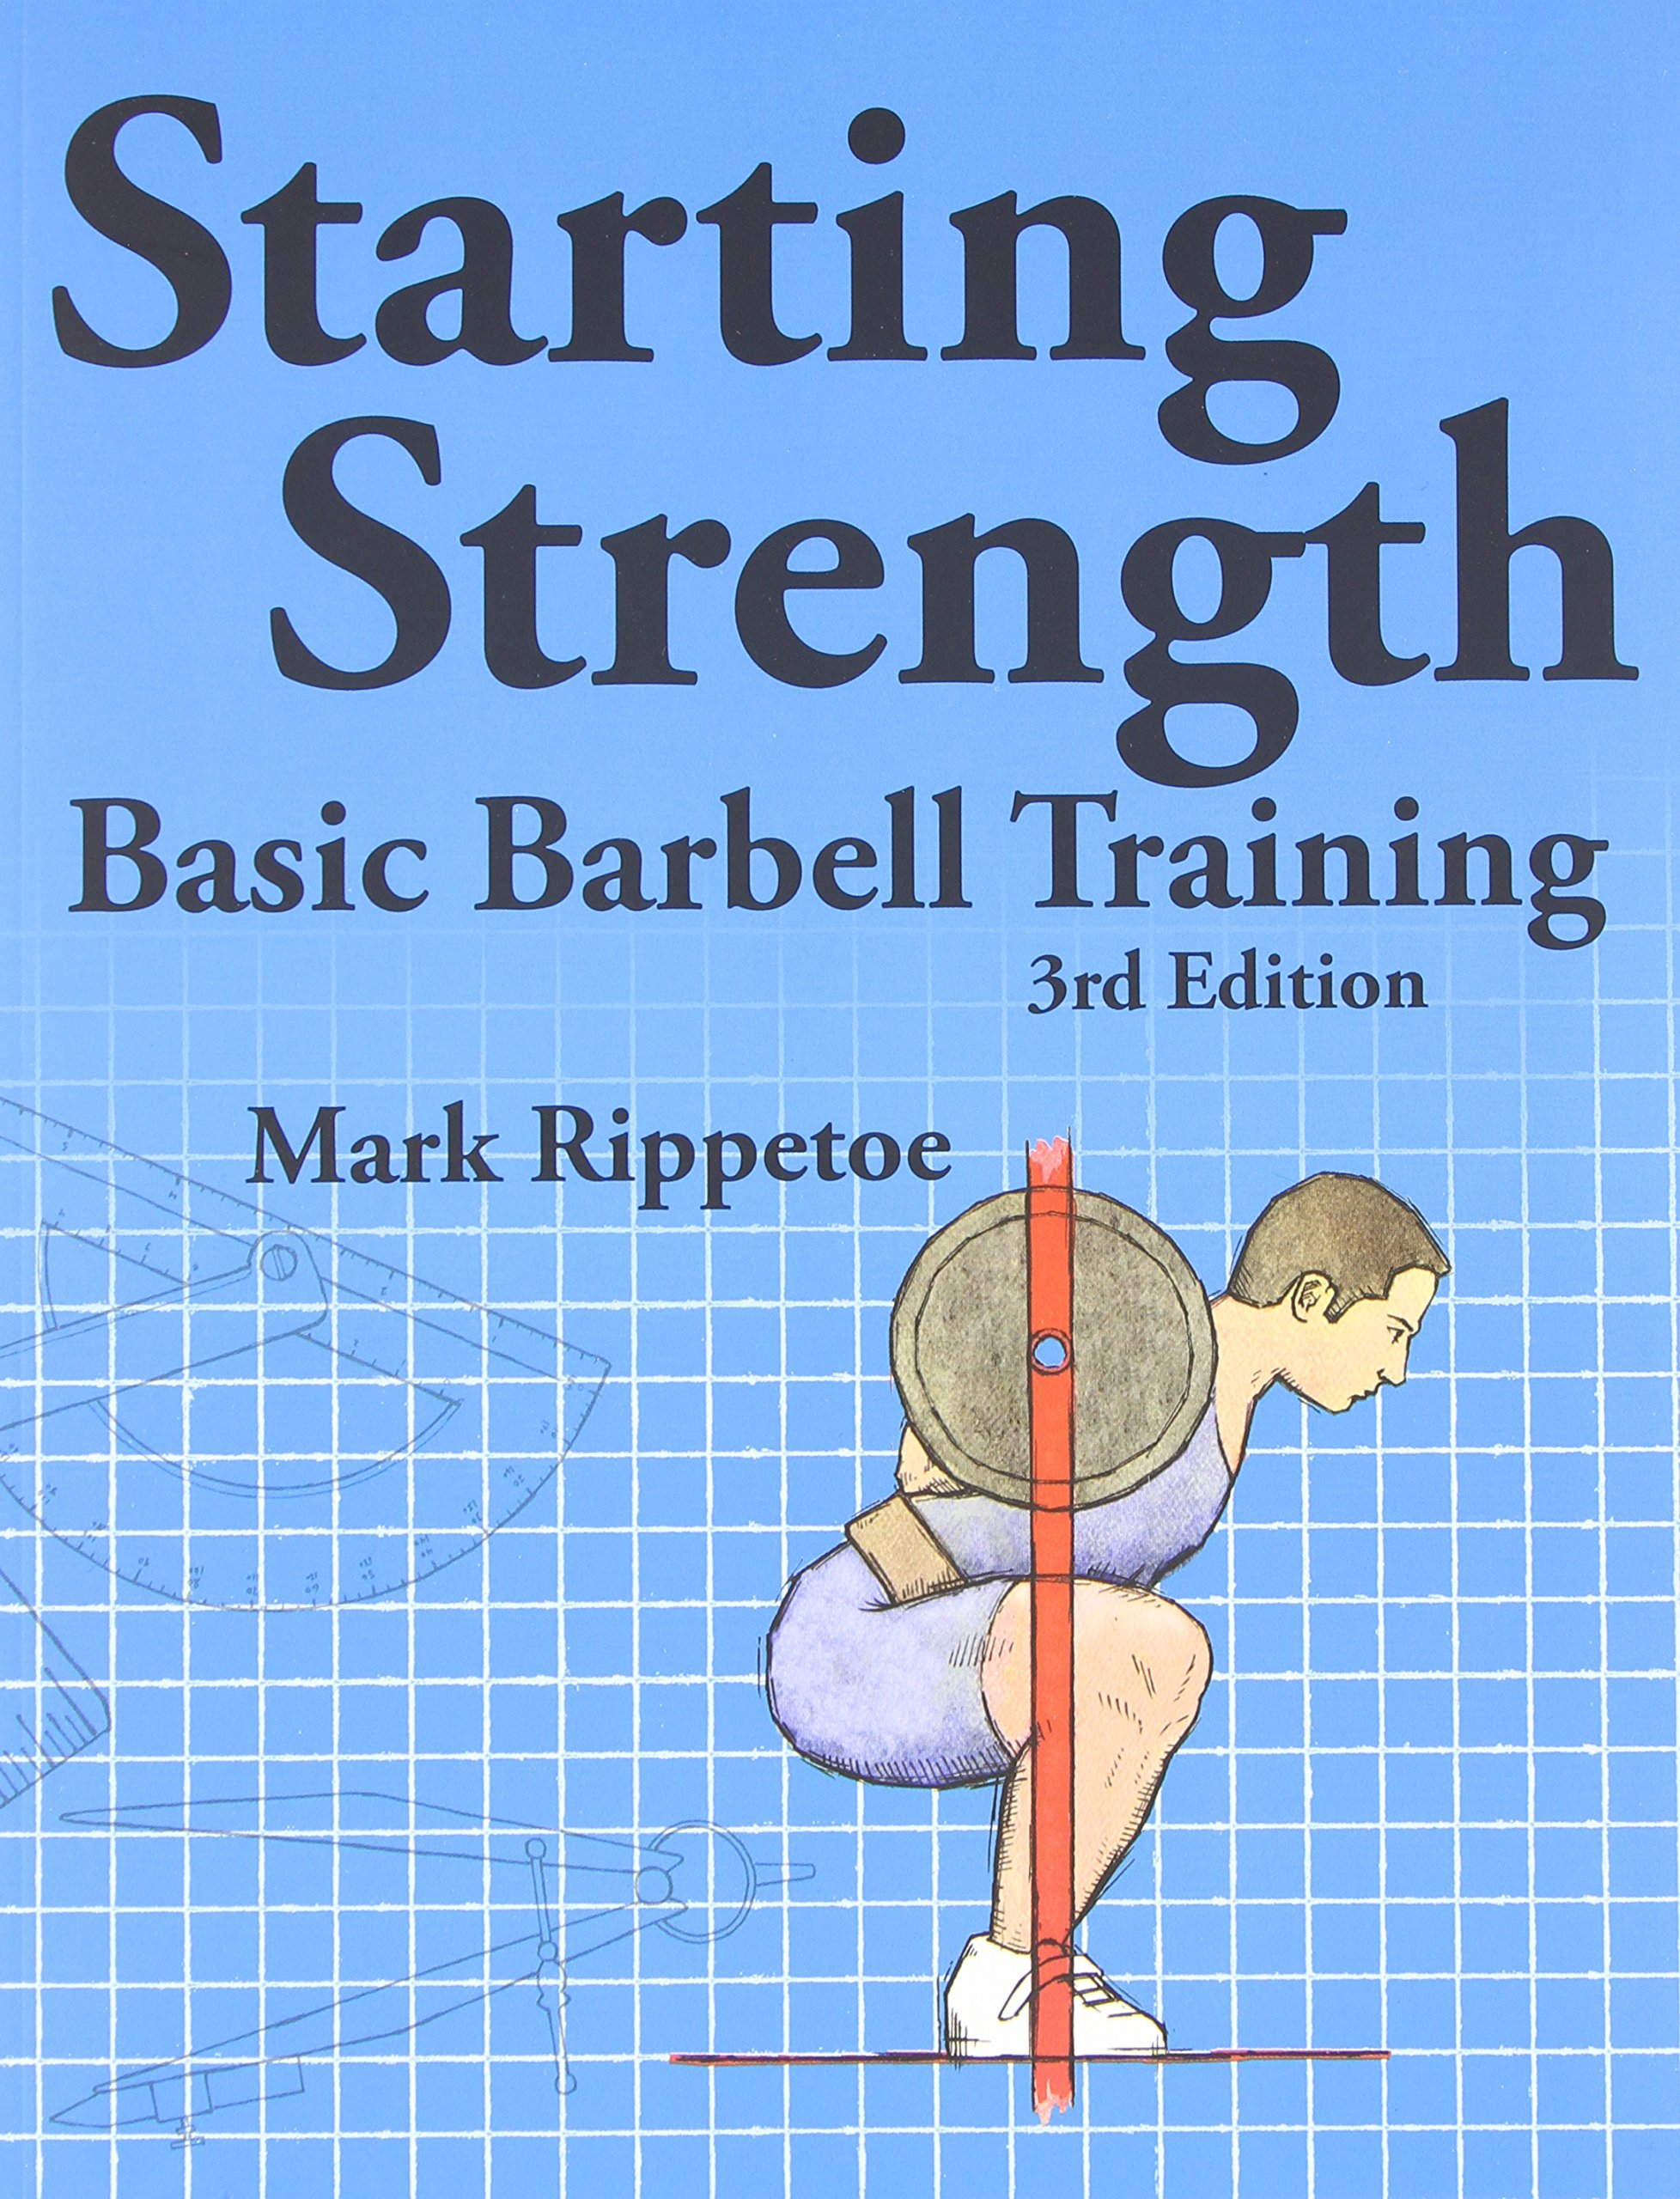 Starting Strength – Basic Barbell Training, 3rd Edition – Book Reviewed